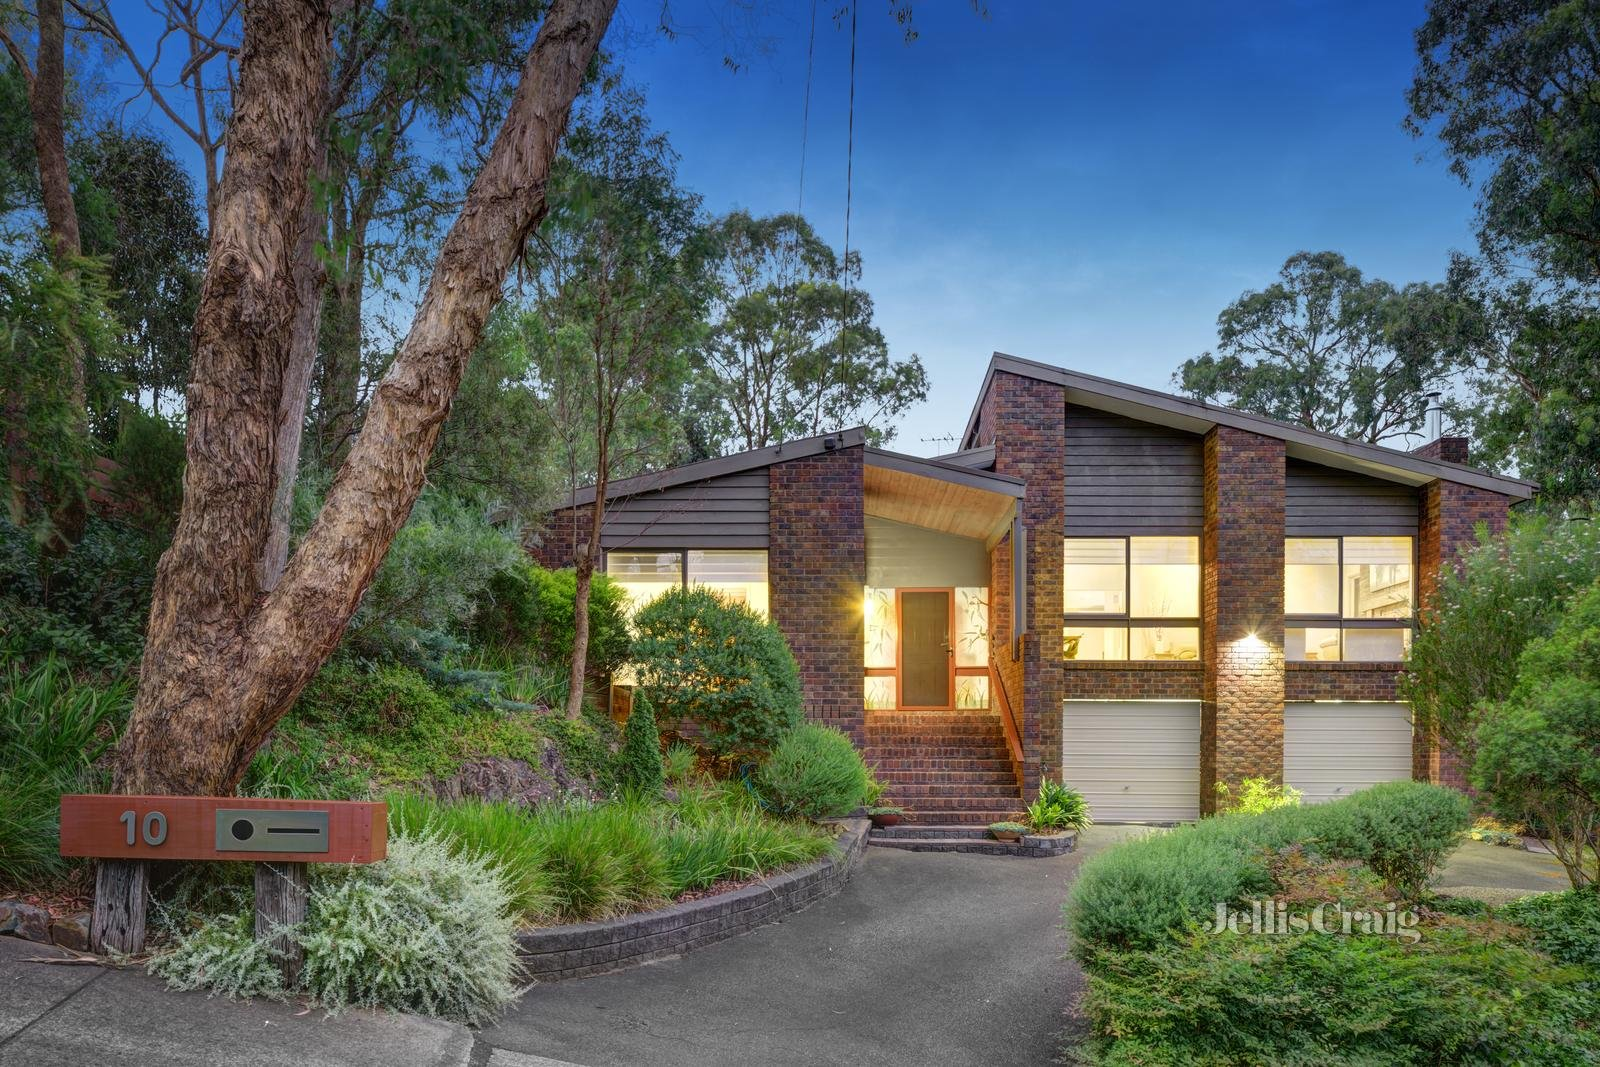 10-11 Milton Close, Warrandyte - Print Image 1